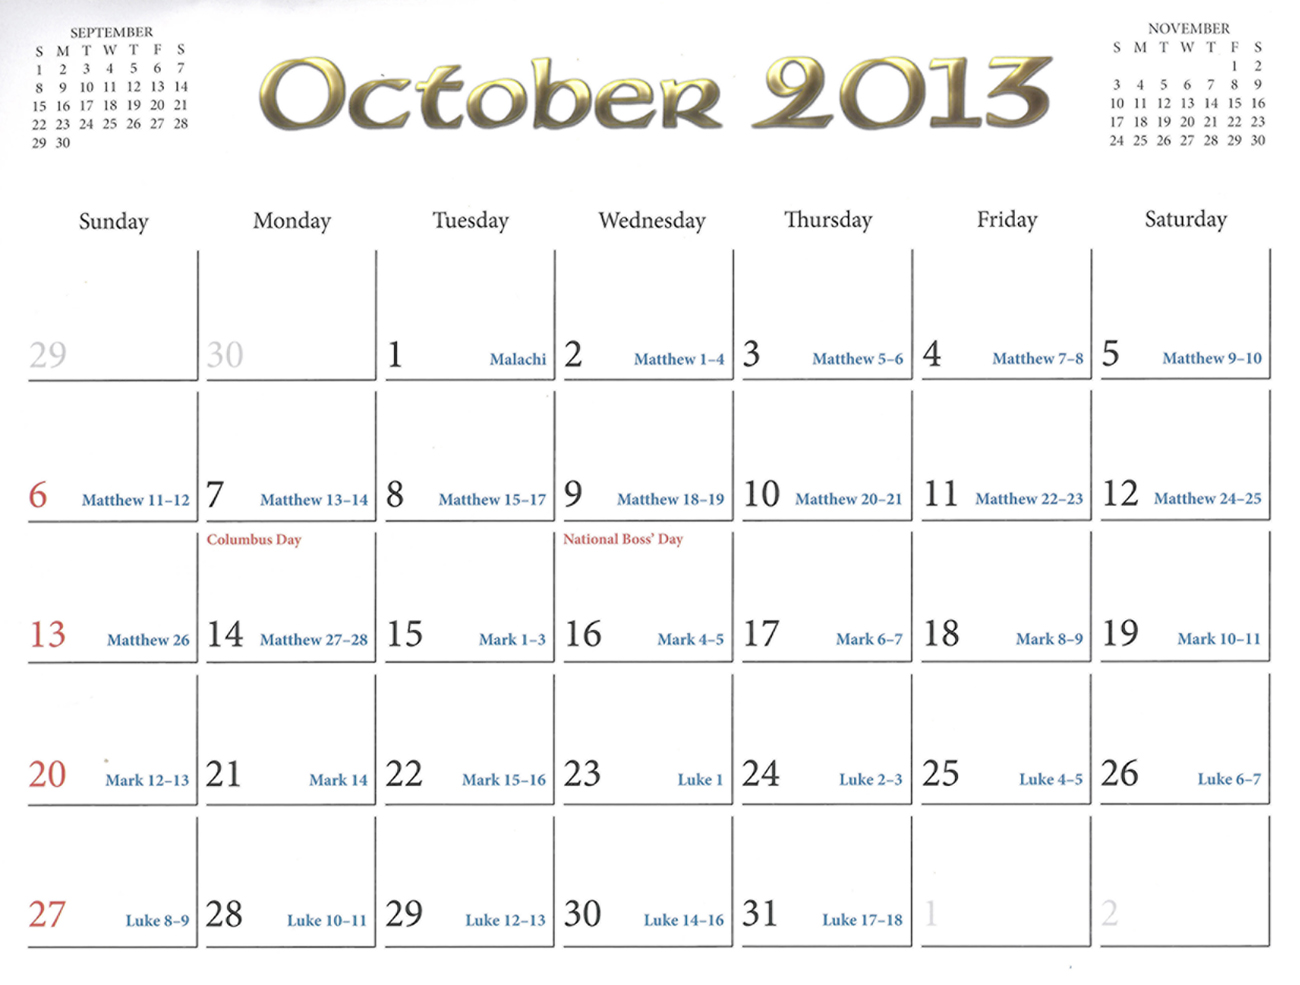 2013 Prophecy Calendar: October - Why Did Jesus Return to Heaven